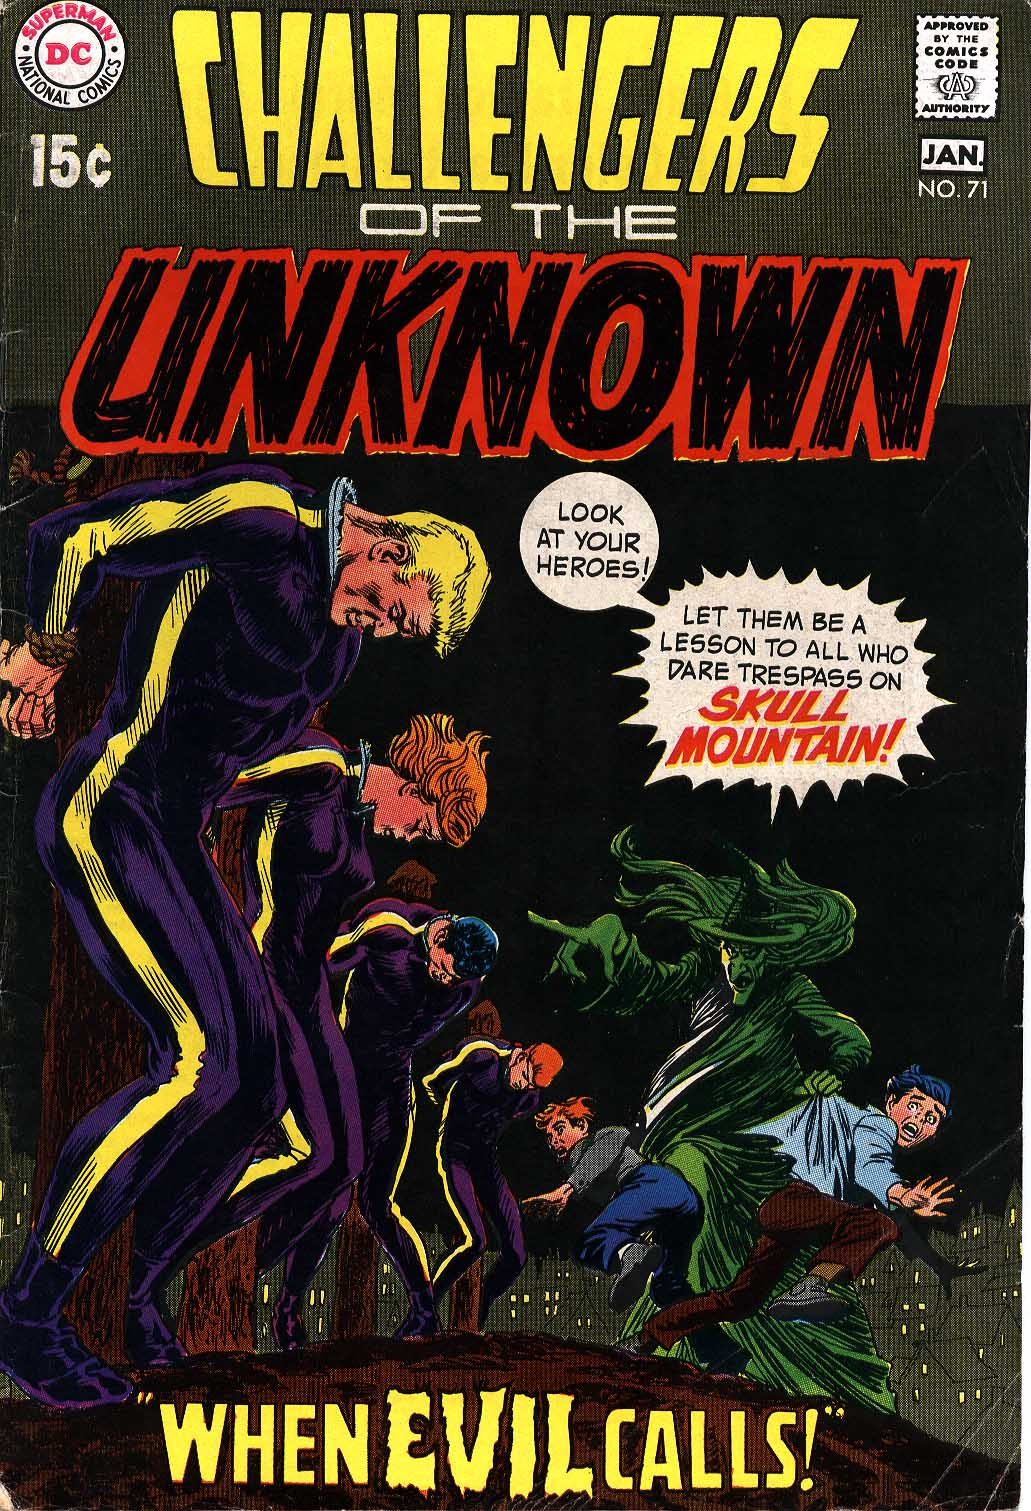 Challengers of the Unknown (1958) #71, cover by Nick Cardy.